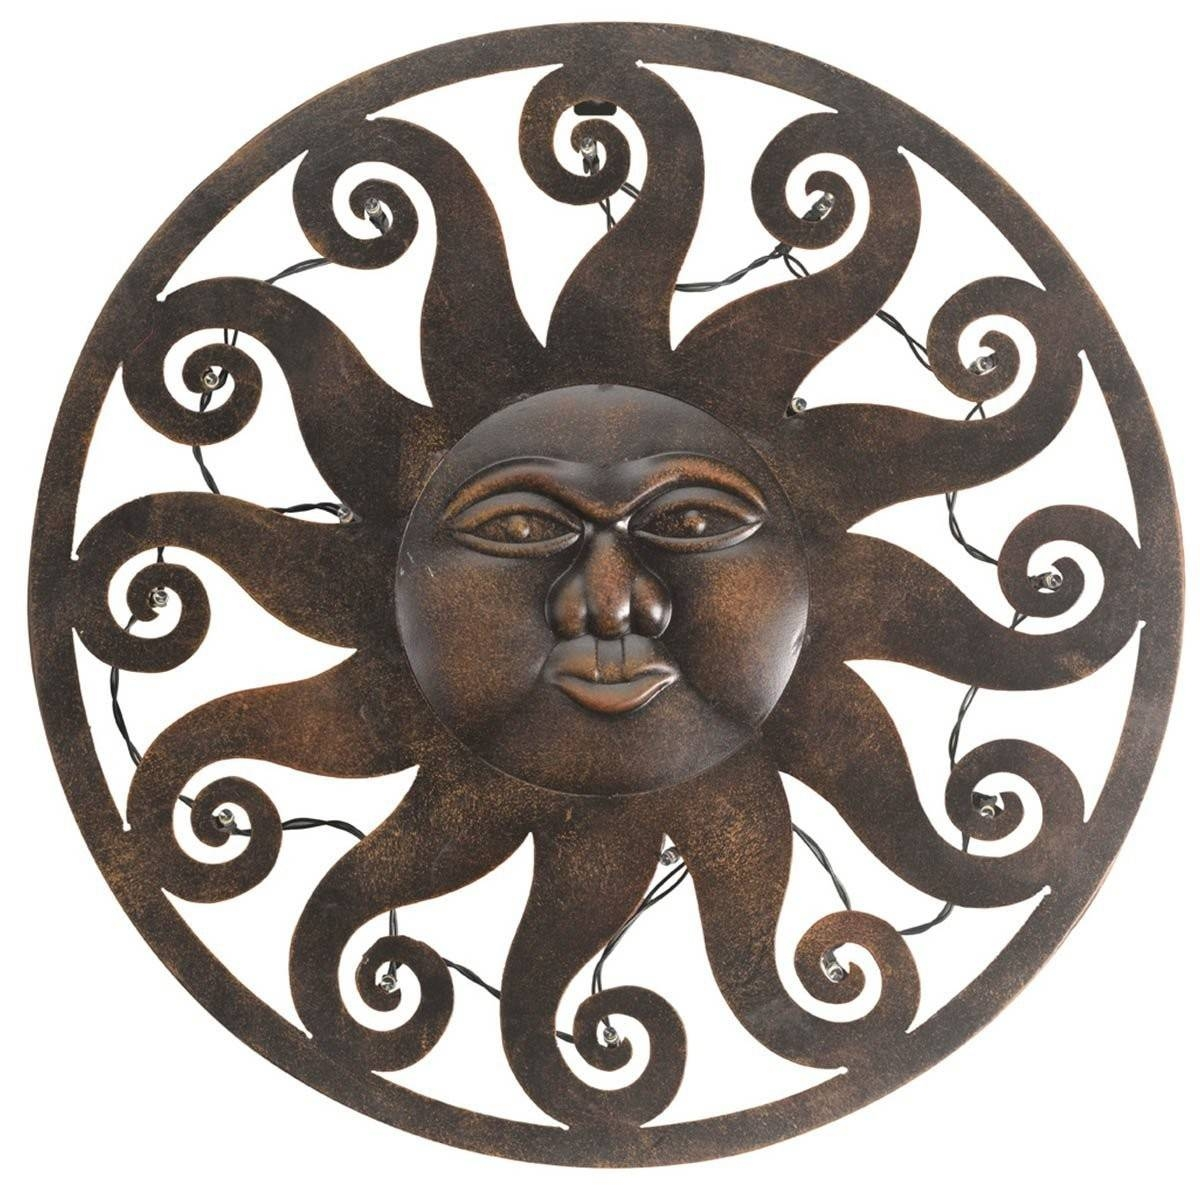 Celestial Sun Led Wall Art | Available At This Is It Stores Uk Intended For Current Outdoor Metal Wall Art (View 19 of 20)